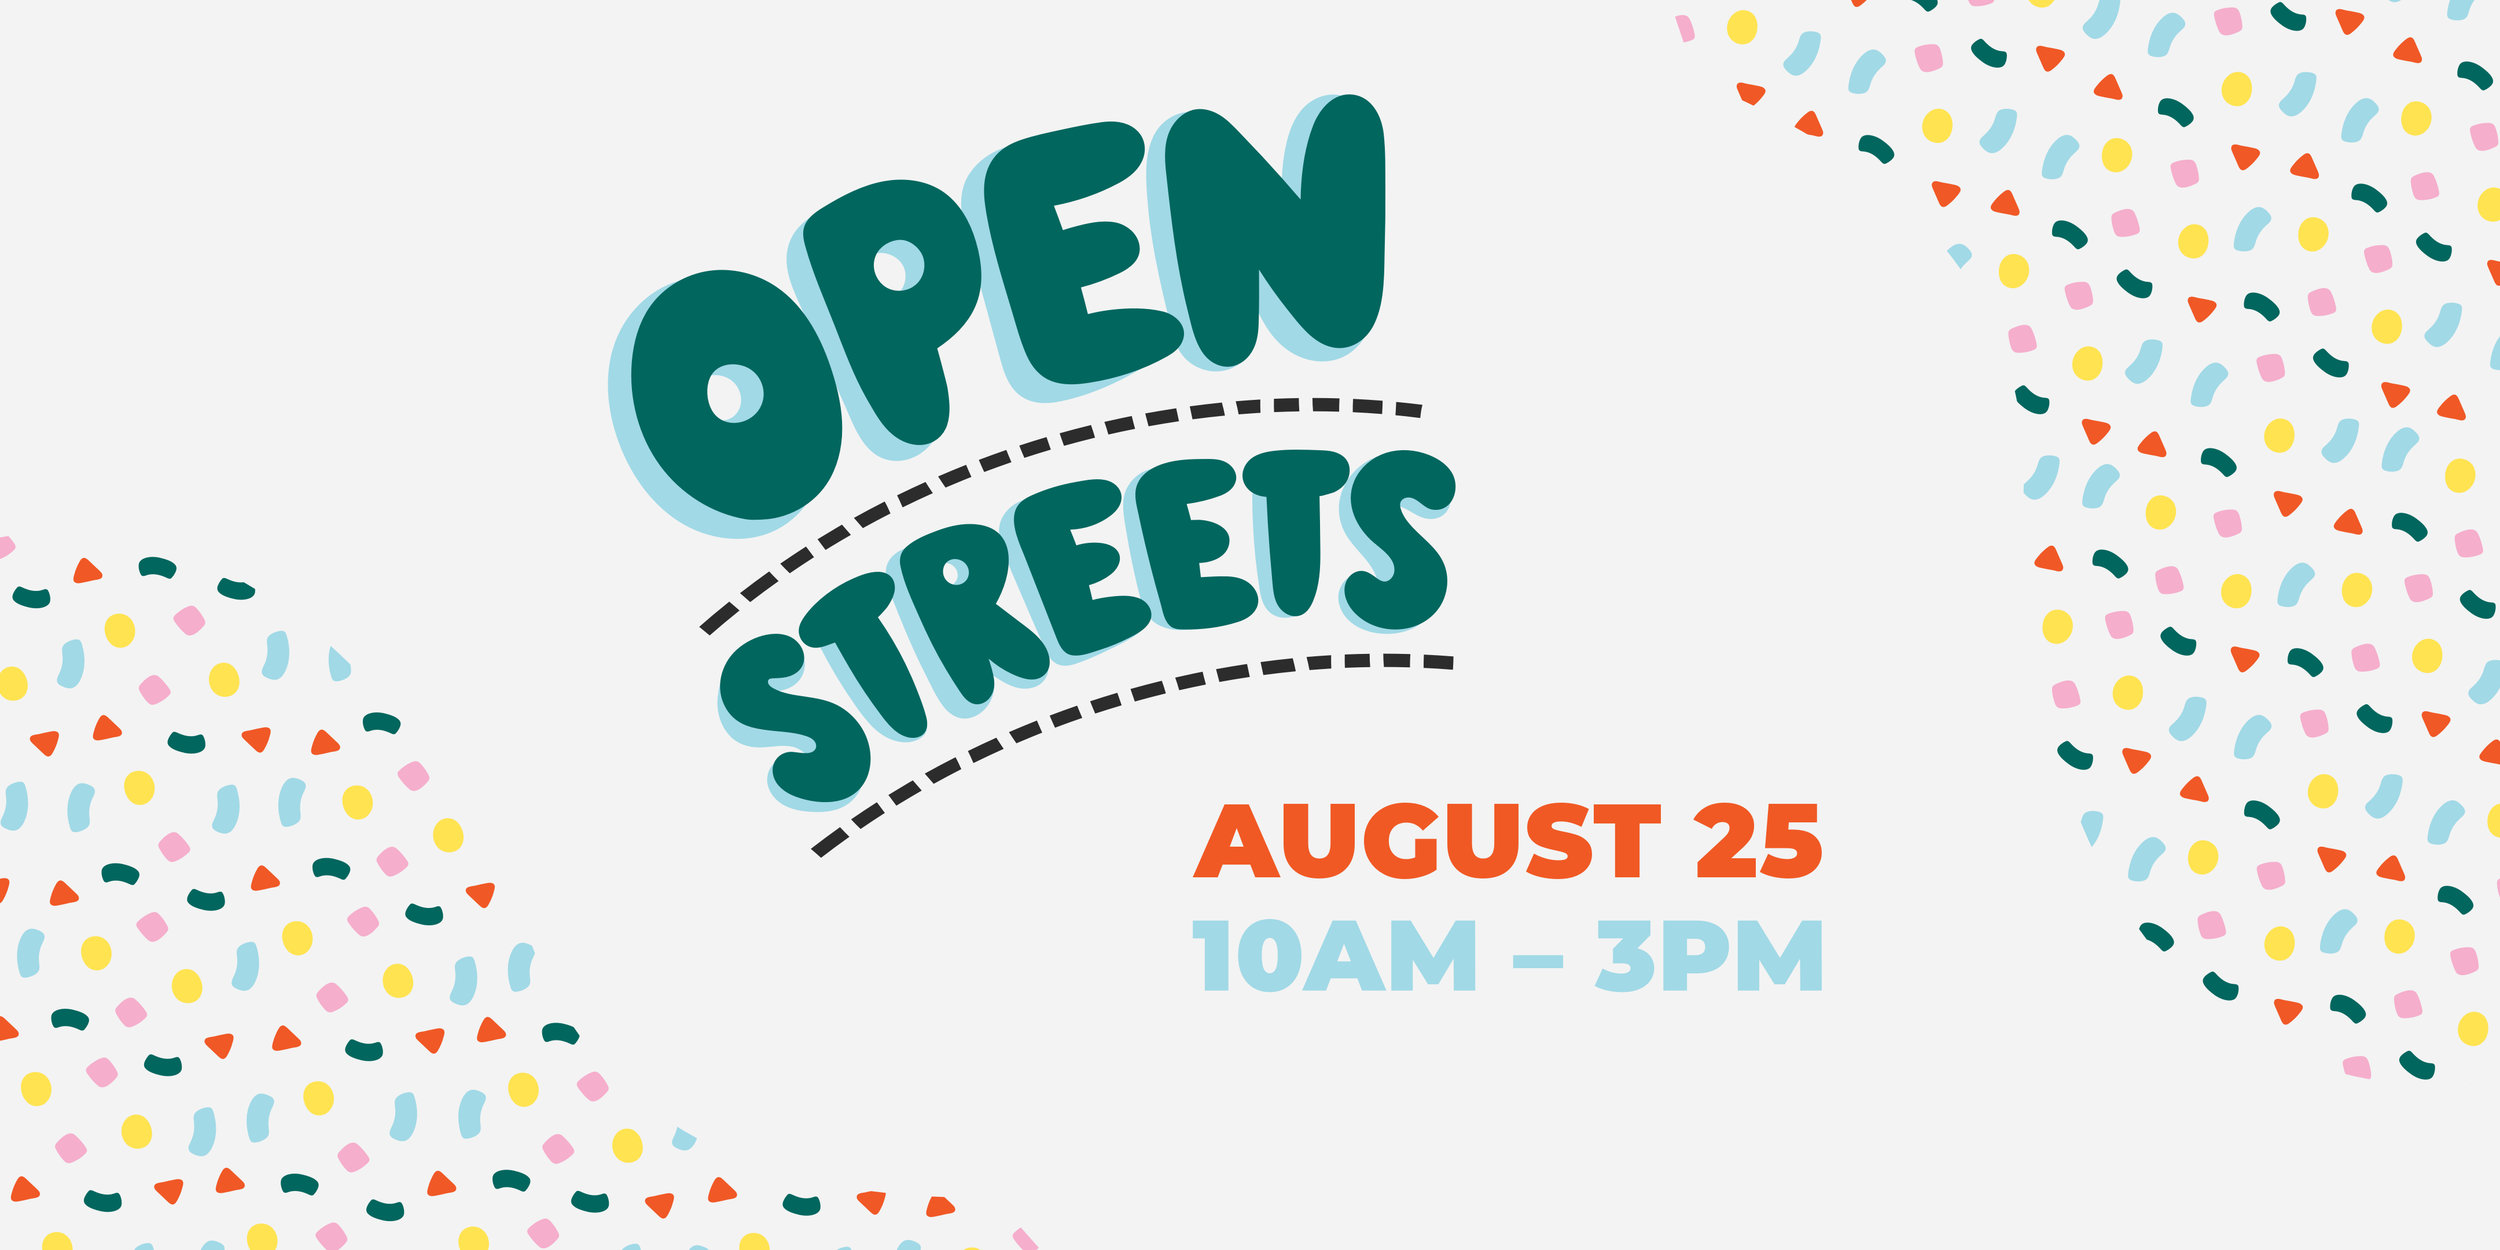 Open Streets  is a one-day event opening Edmonton's iconic Jasper Avenue to walking, biking and rolling. It's being led by  Paths for People , a local non-profit championing an Edmonton that's human-centred by design.  The streets enroute will be closed to motor-vehicle traffic and open to people- think paved parks for everyone.  We're expecting 5000-8000 people to come out and enjoy the festivities!  We are currently looking for local businesses, non-profit organizations, artists, musicians, performers, student groups, and food vendors to join us for this amazing event!  If you are interested, please fill out the programming application  here .  If you have any questions or concerns, please email hello@wearewildheart.com.  We hope to see you there!  - The Wildheart Collective Team